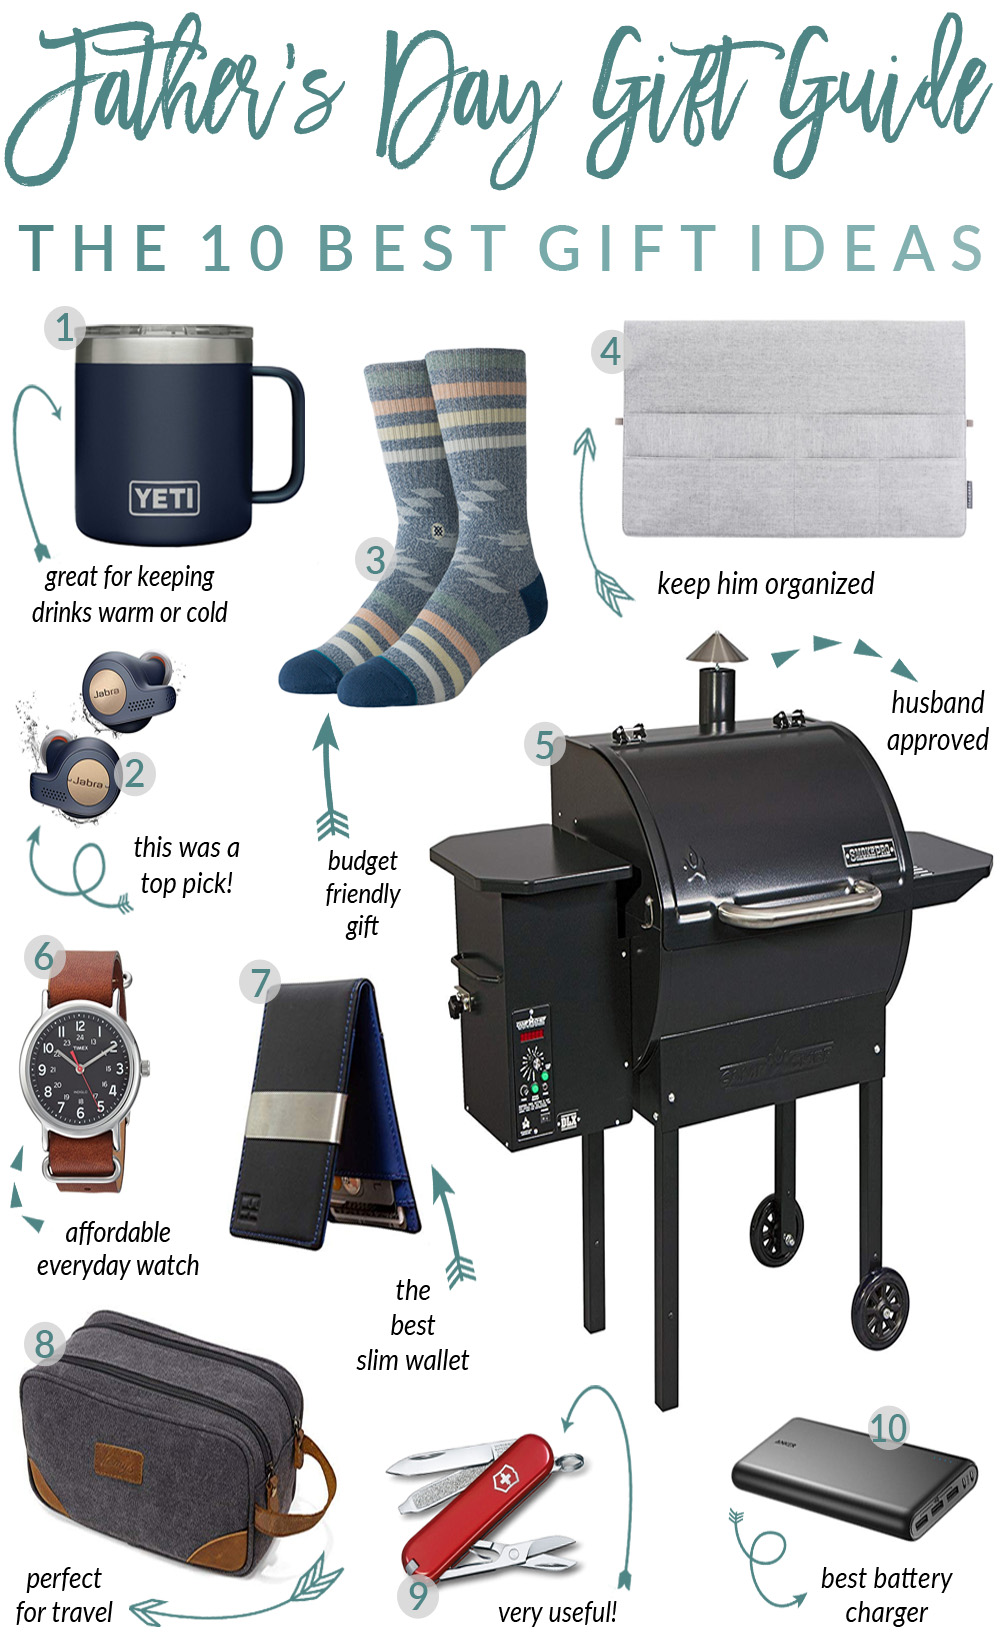 Father's Day Gift Guide - The 10 Best Gift Ideas | SandyALaMode